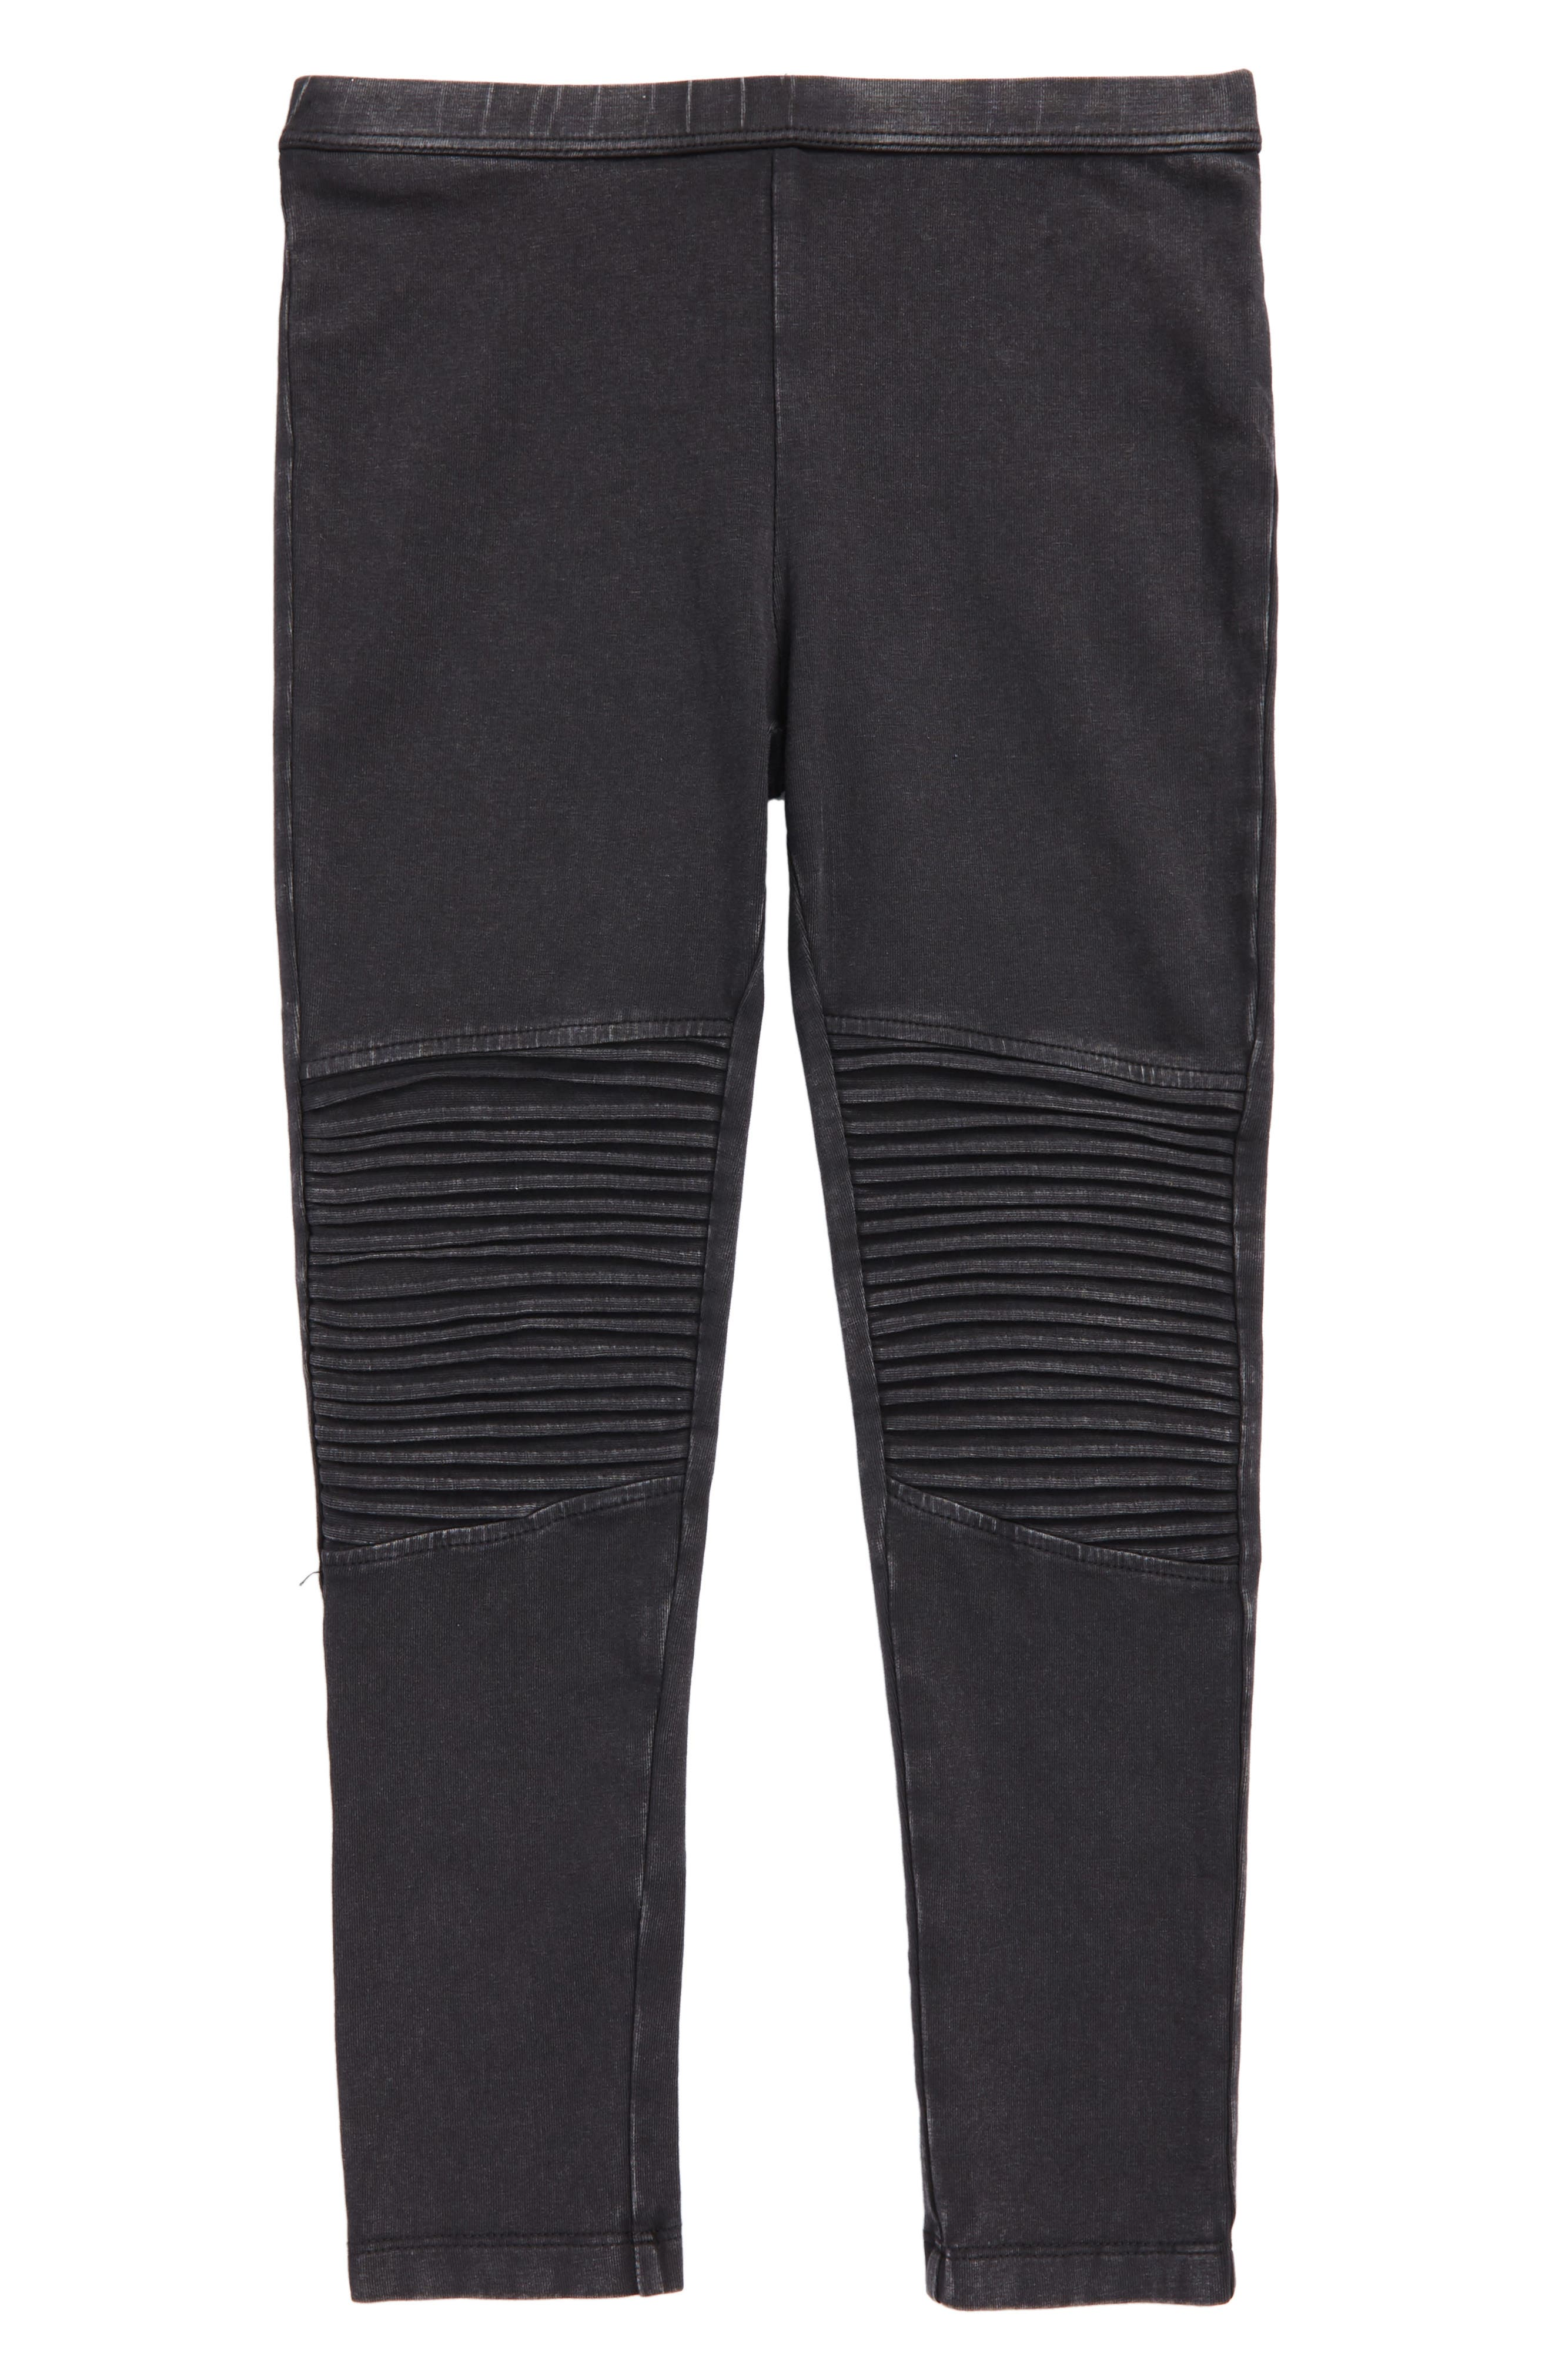 Moto Leggings,                         Main,                         color,